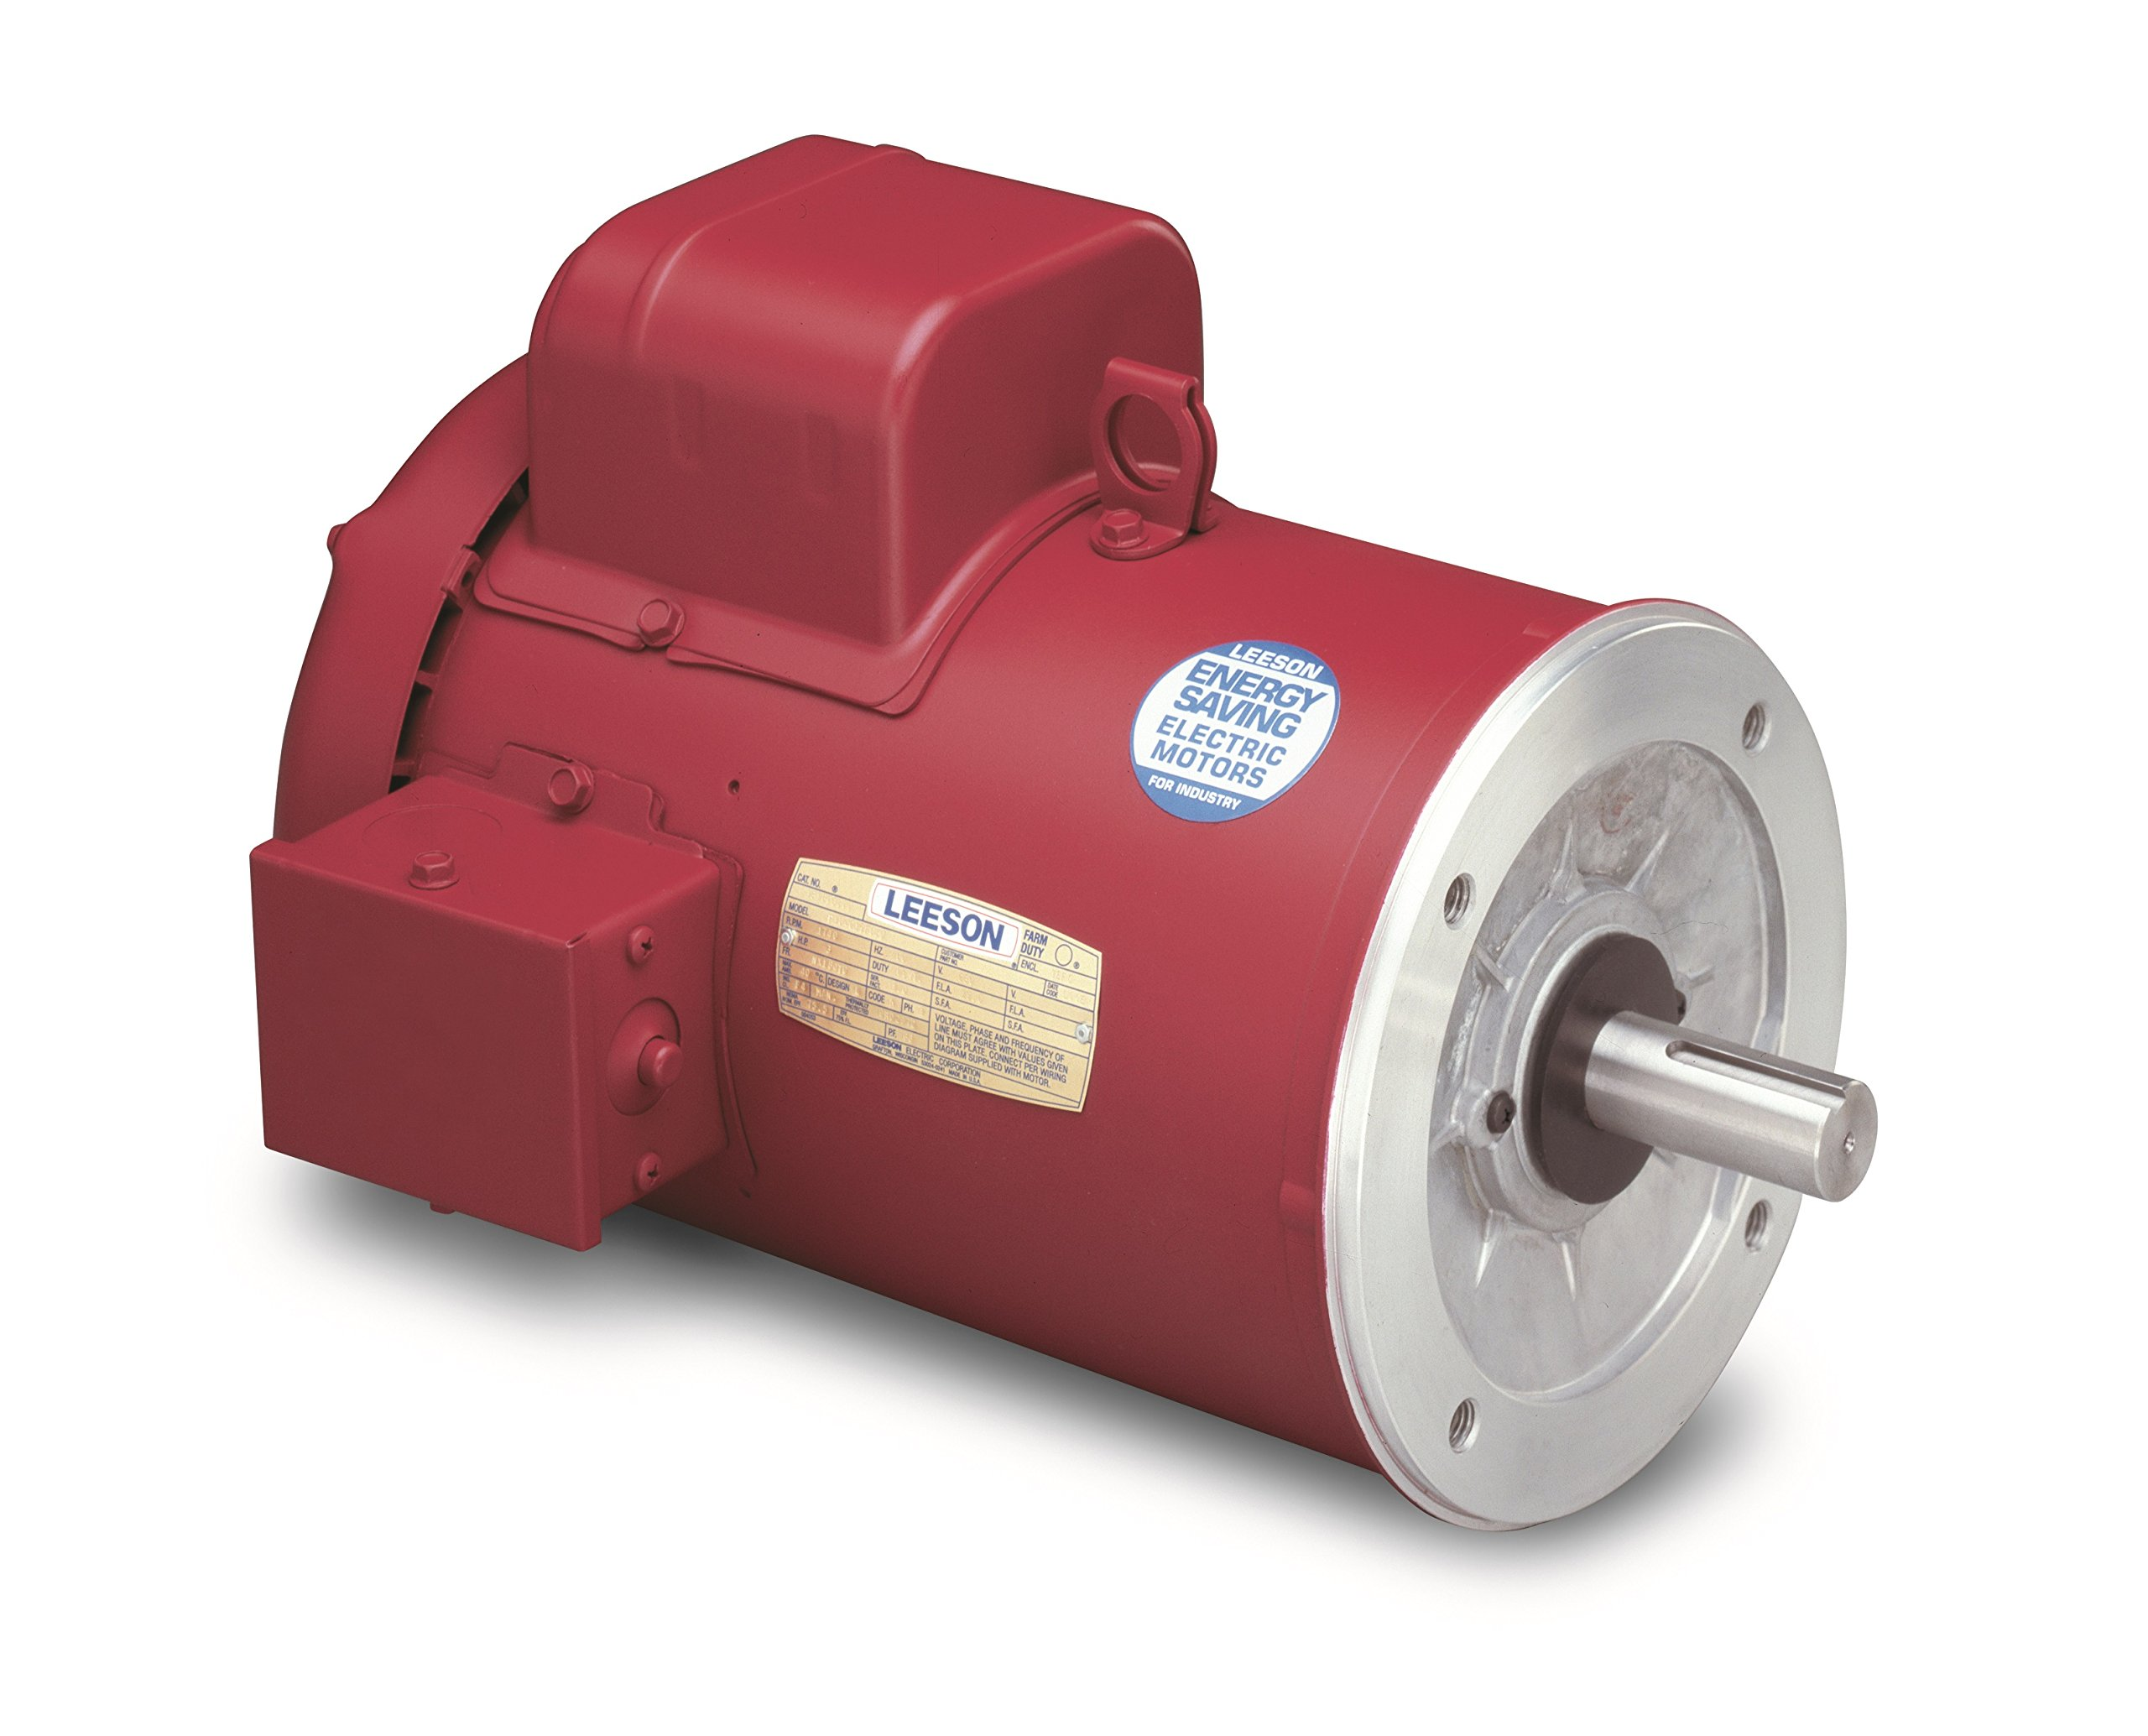 Leeson 110492.00 Hi-Torque Agricultural Motor, 1 Phase, 56C Frame, Round Mounting, 1/2HP, 1800 RPM, 115/208-230V Voltage, 60Hz Fequency